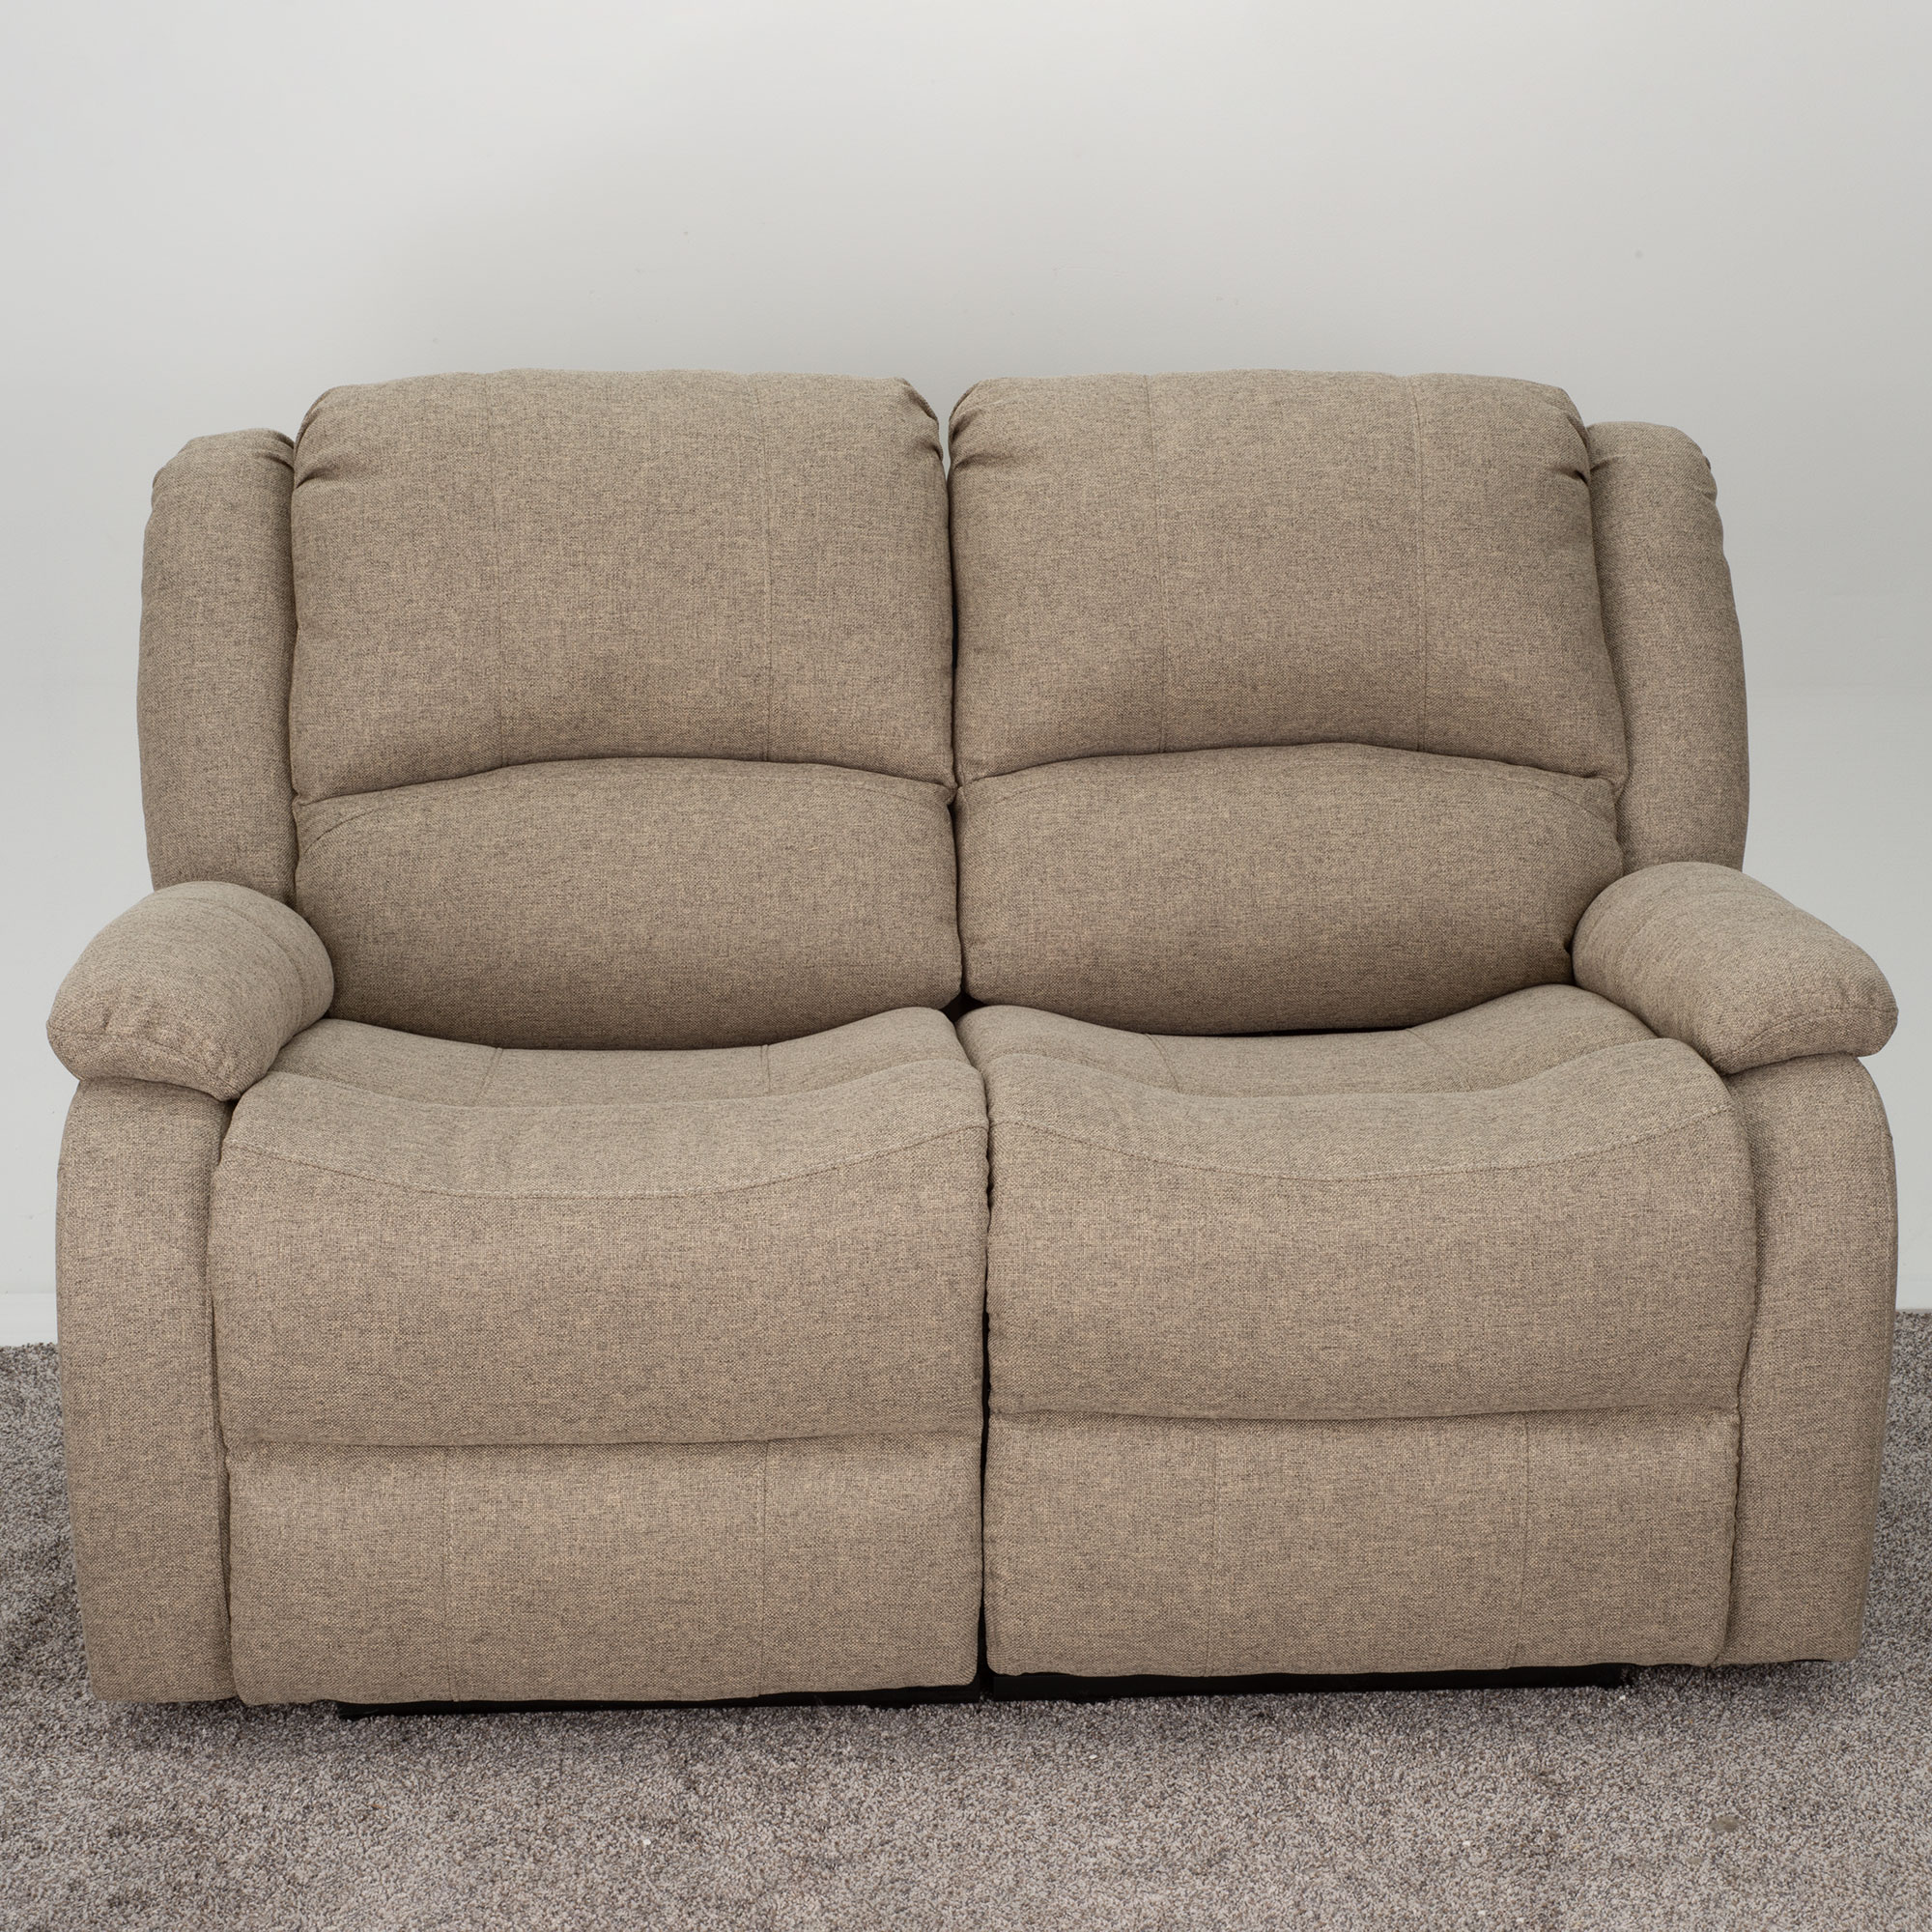 RV Double Recliner in Cloth